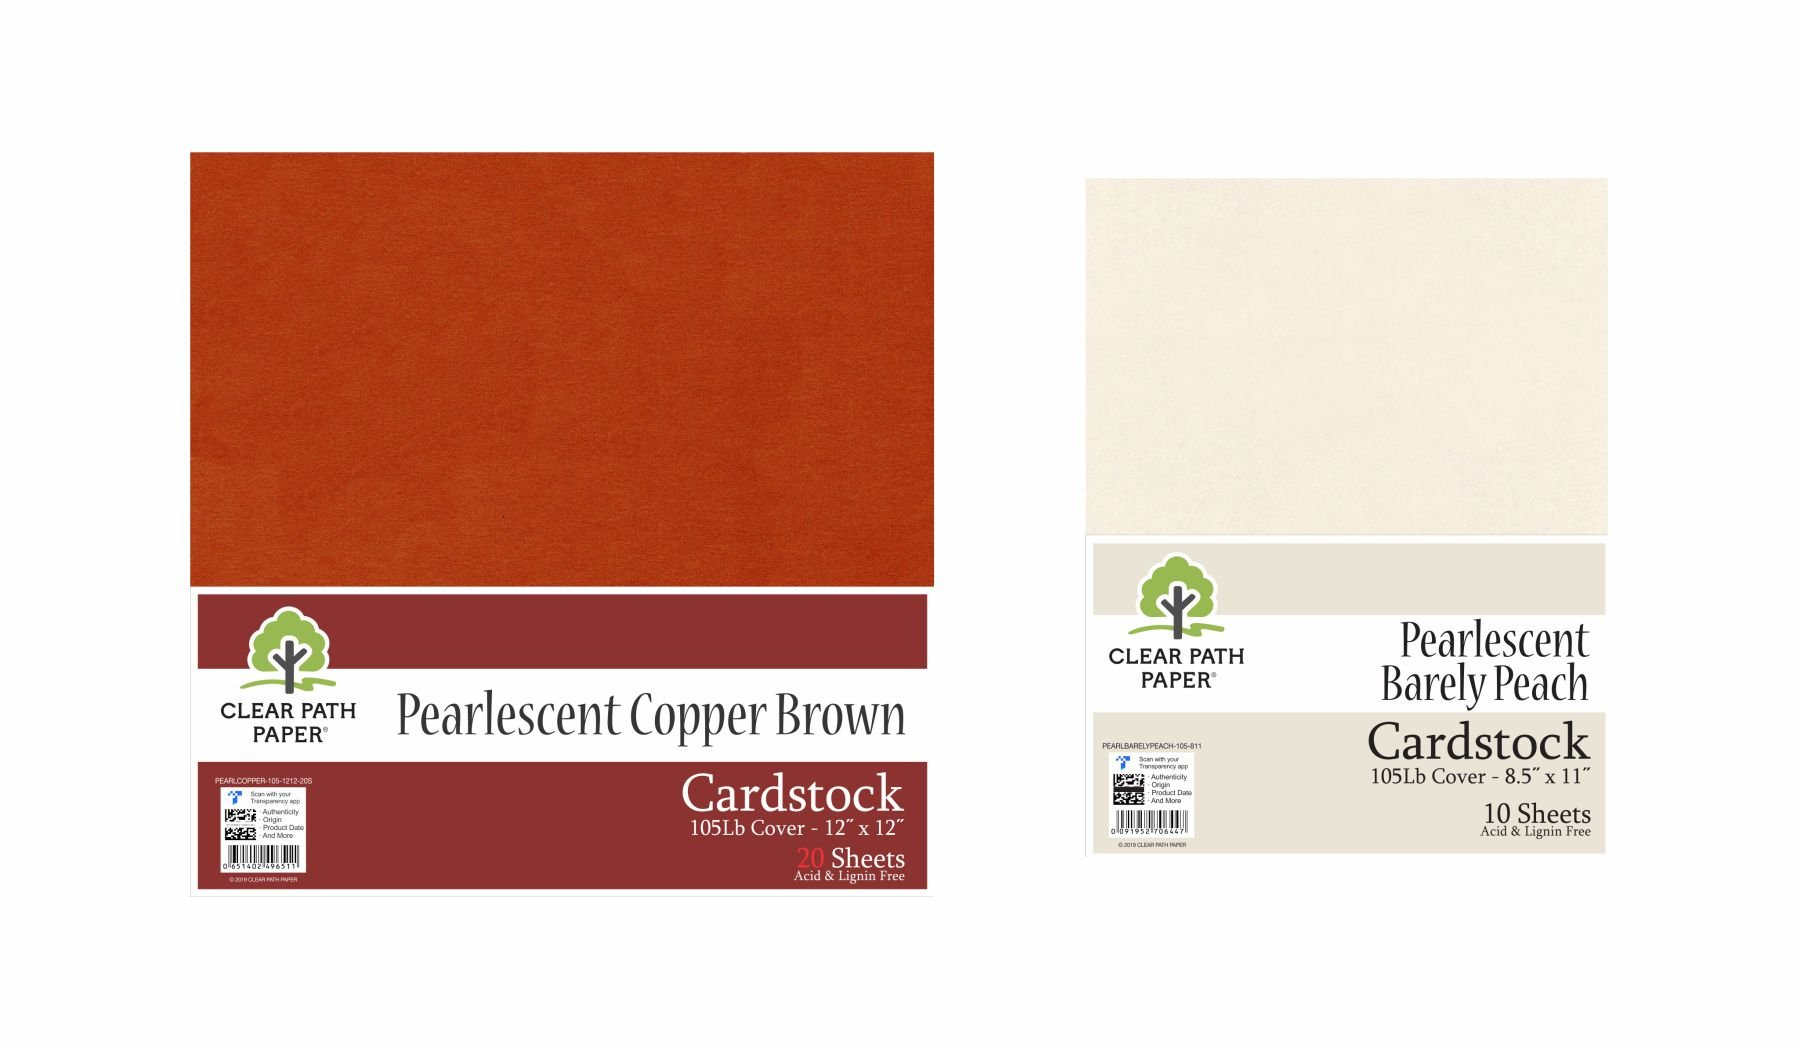 Image of an Amazon bundle of Pearlescent Copper Brown and Pearlescent Barely Peach Cardstock packs